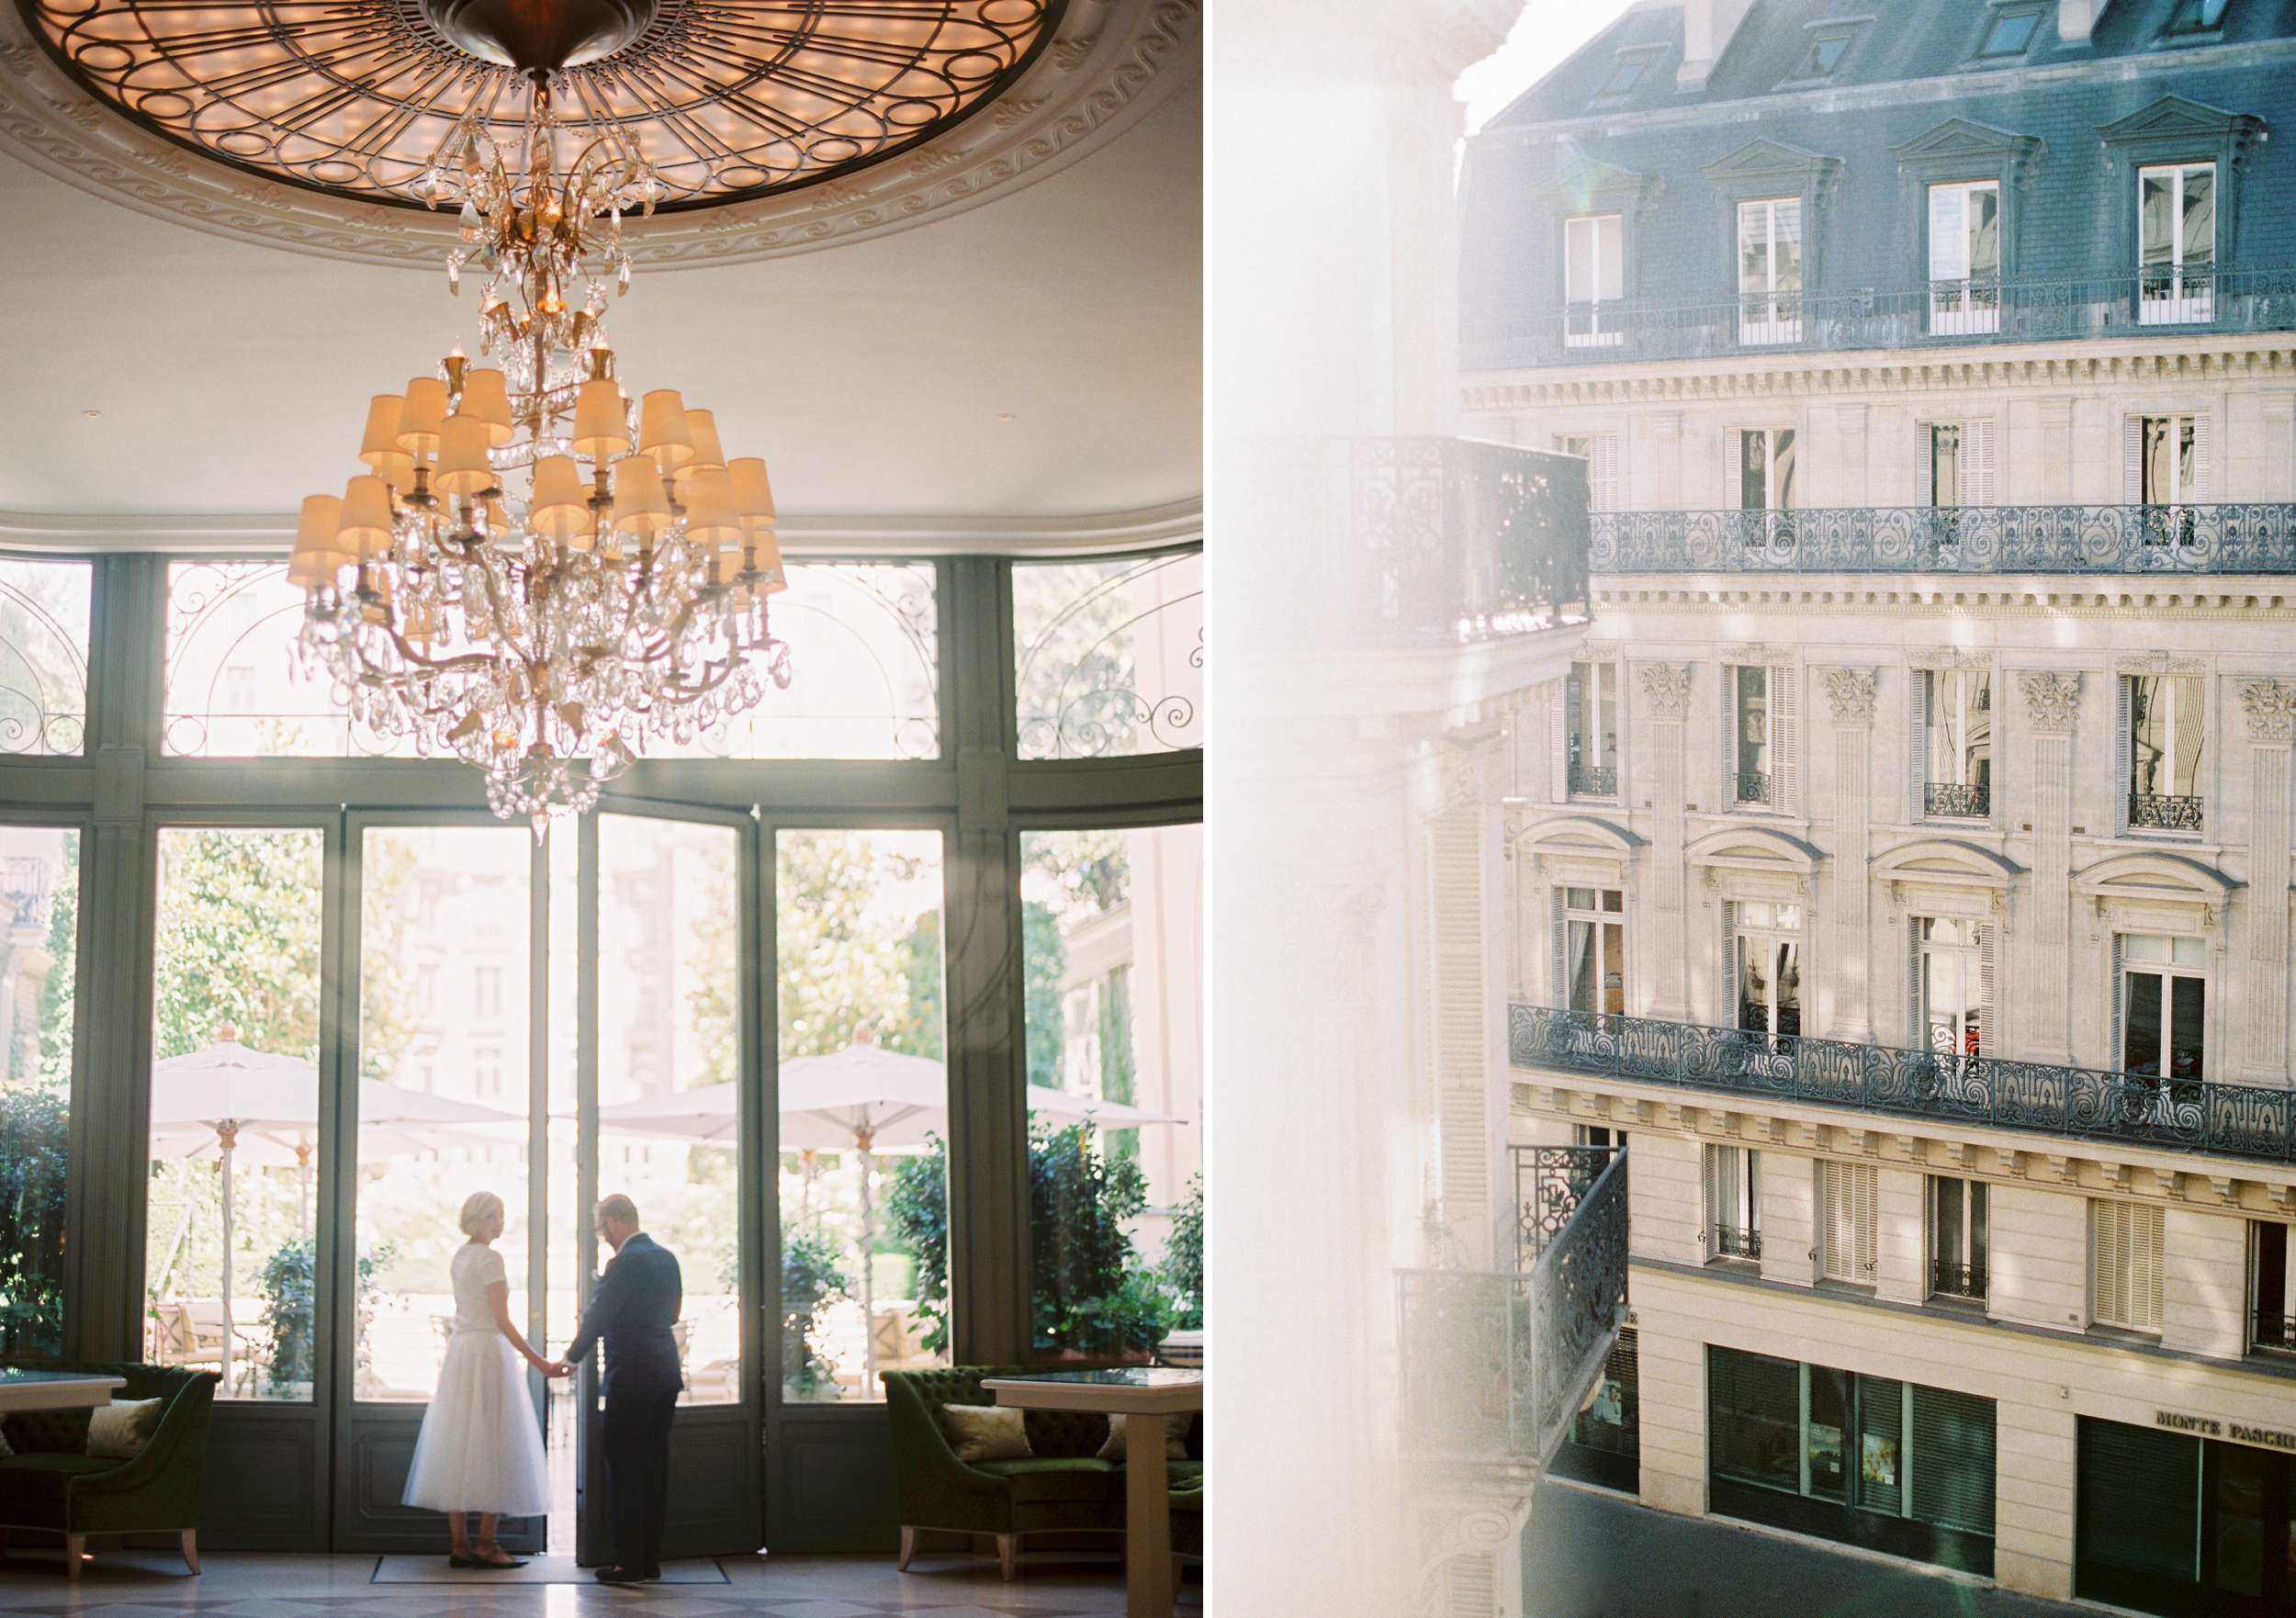 Paris Ritz wedding door